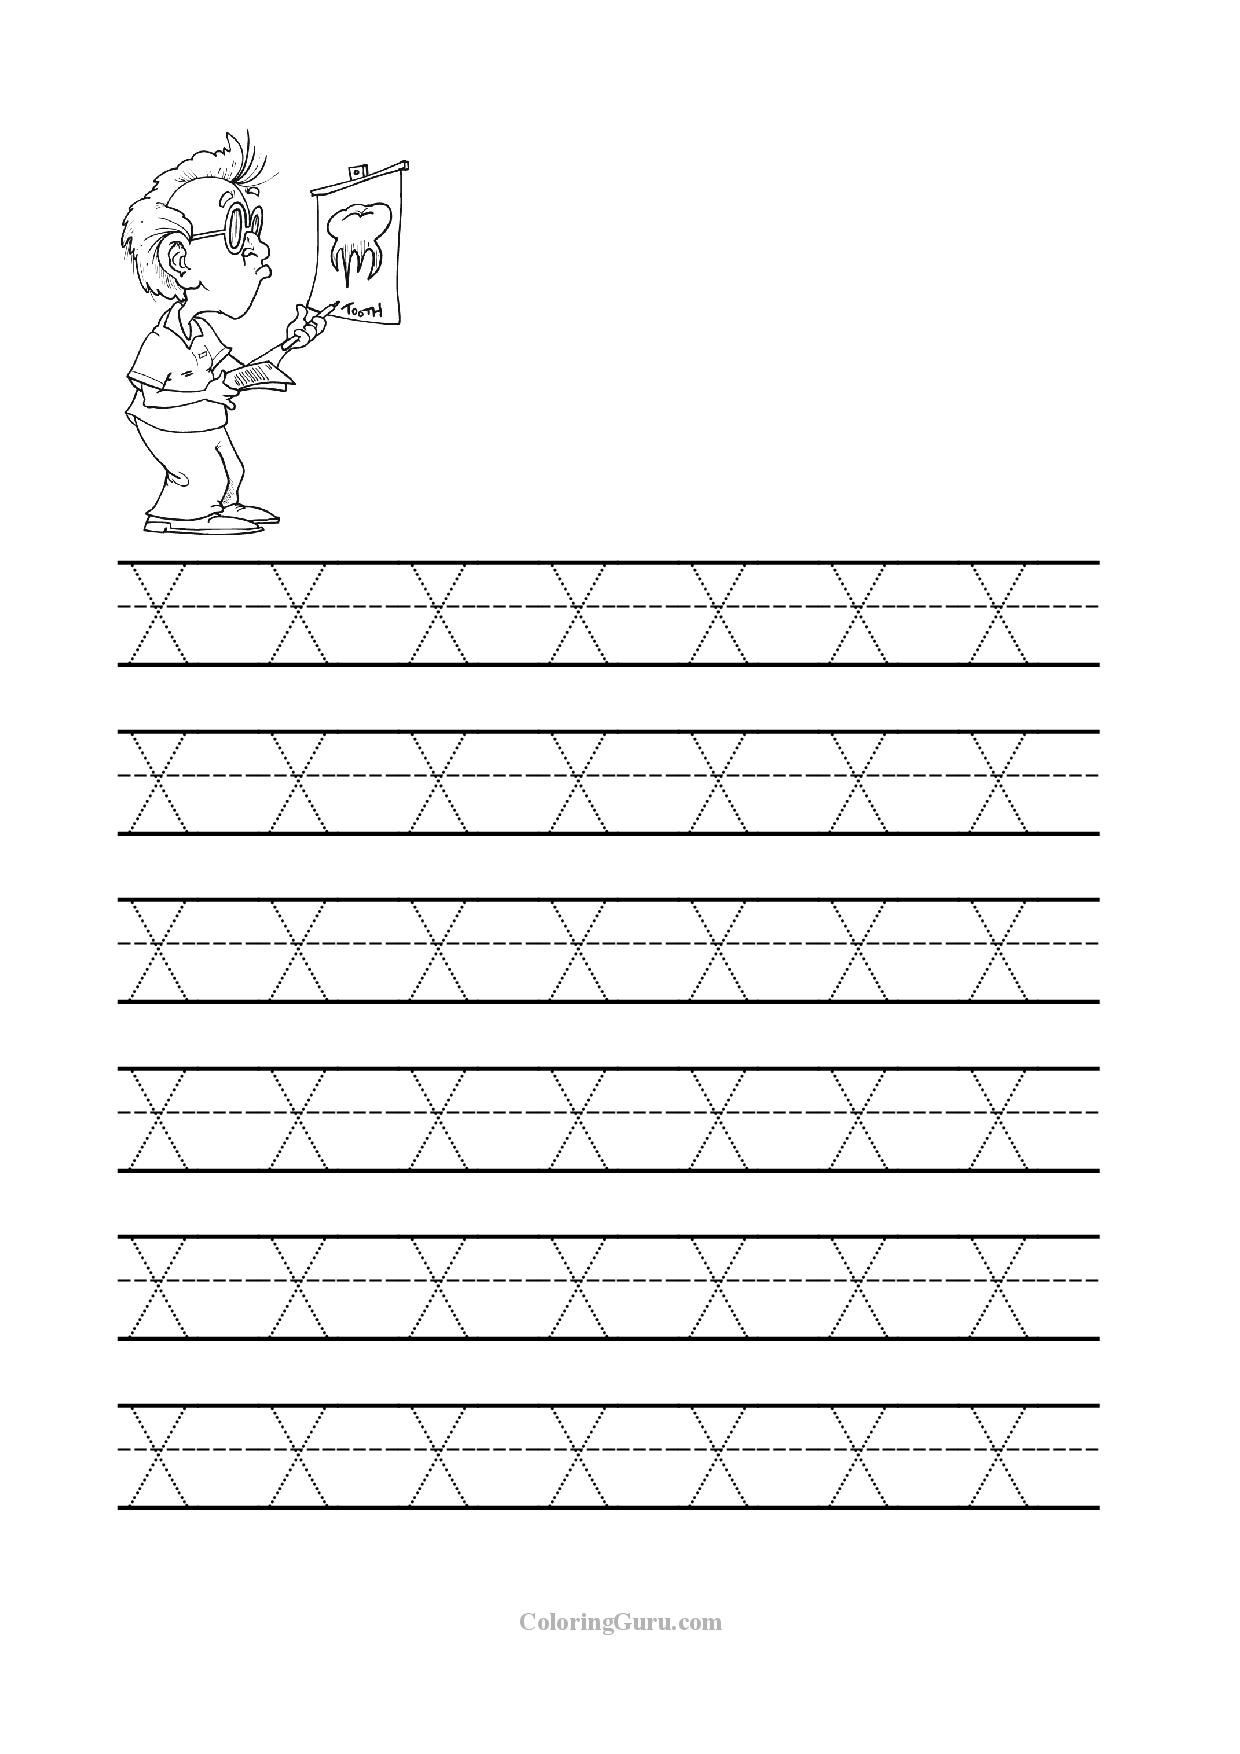 Preschool Letter X Worksheets Free Printable Tracing Letter X Worksheets for Preschool